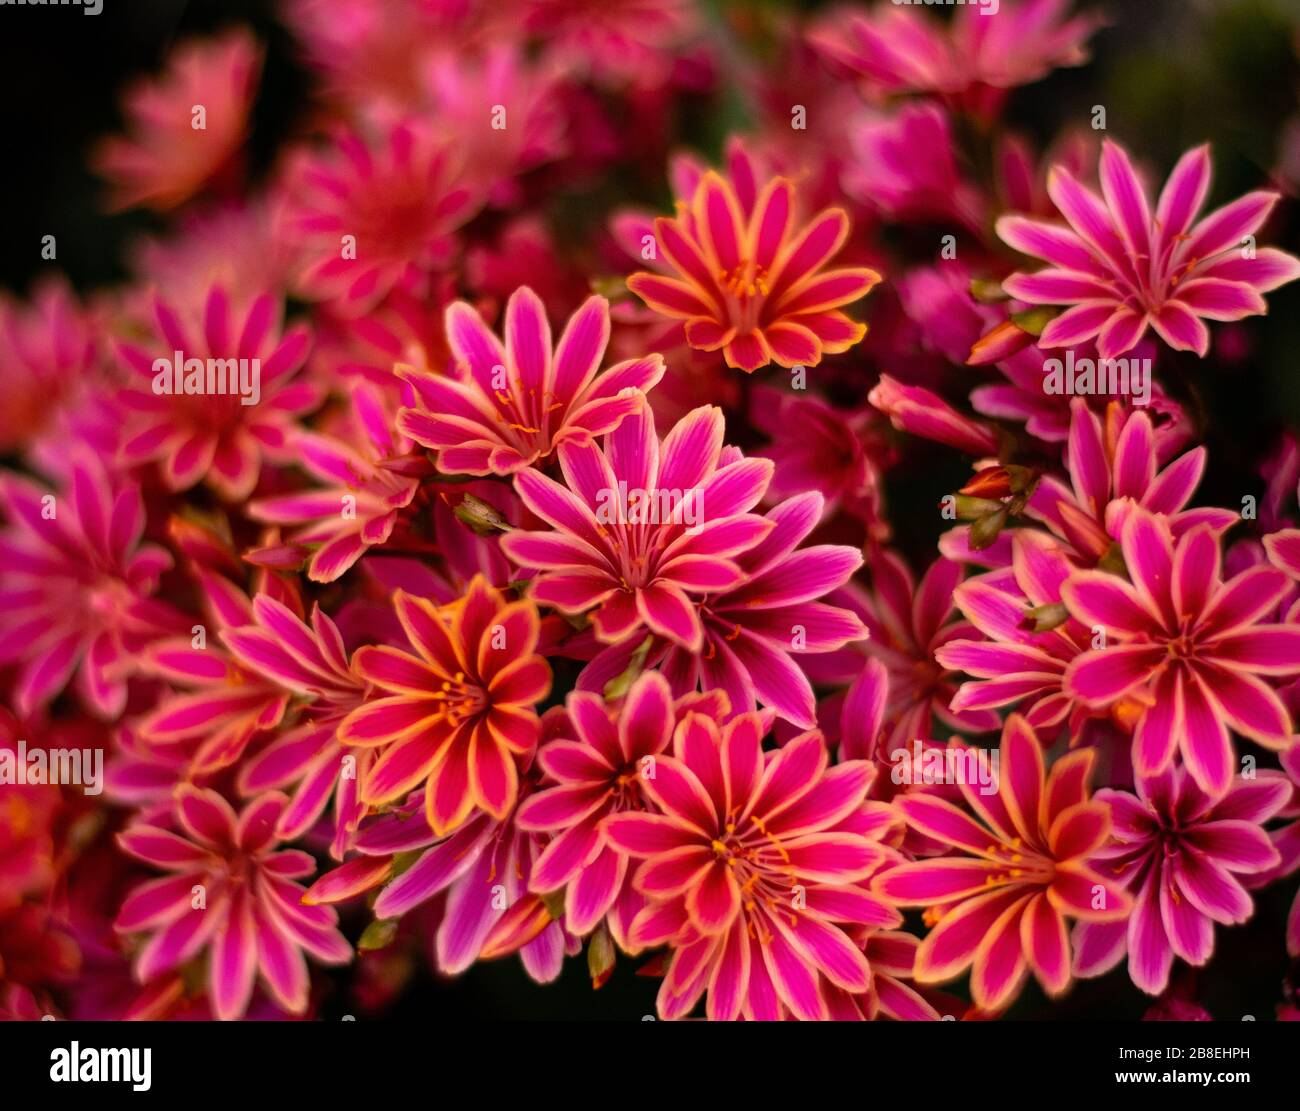 Pink Flower Desktop Wallpaper High Resolution Stock Photography And Images Alamy